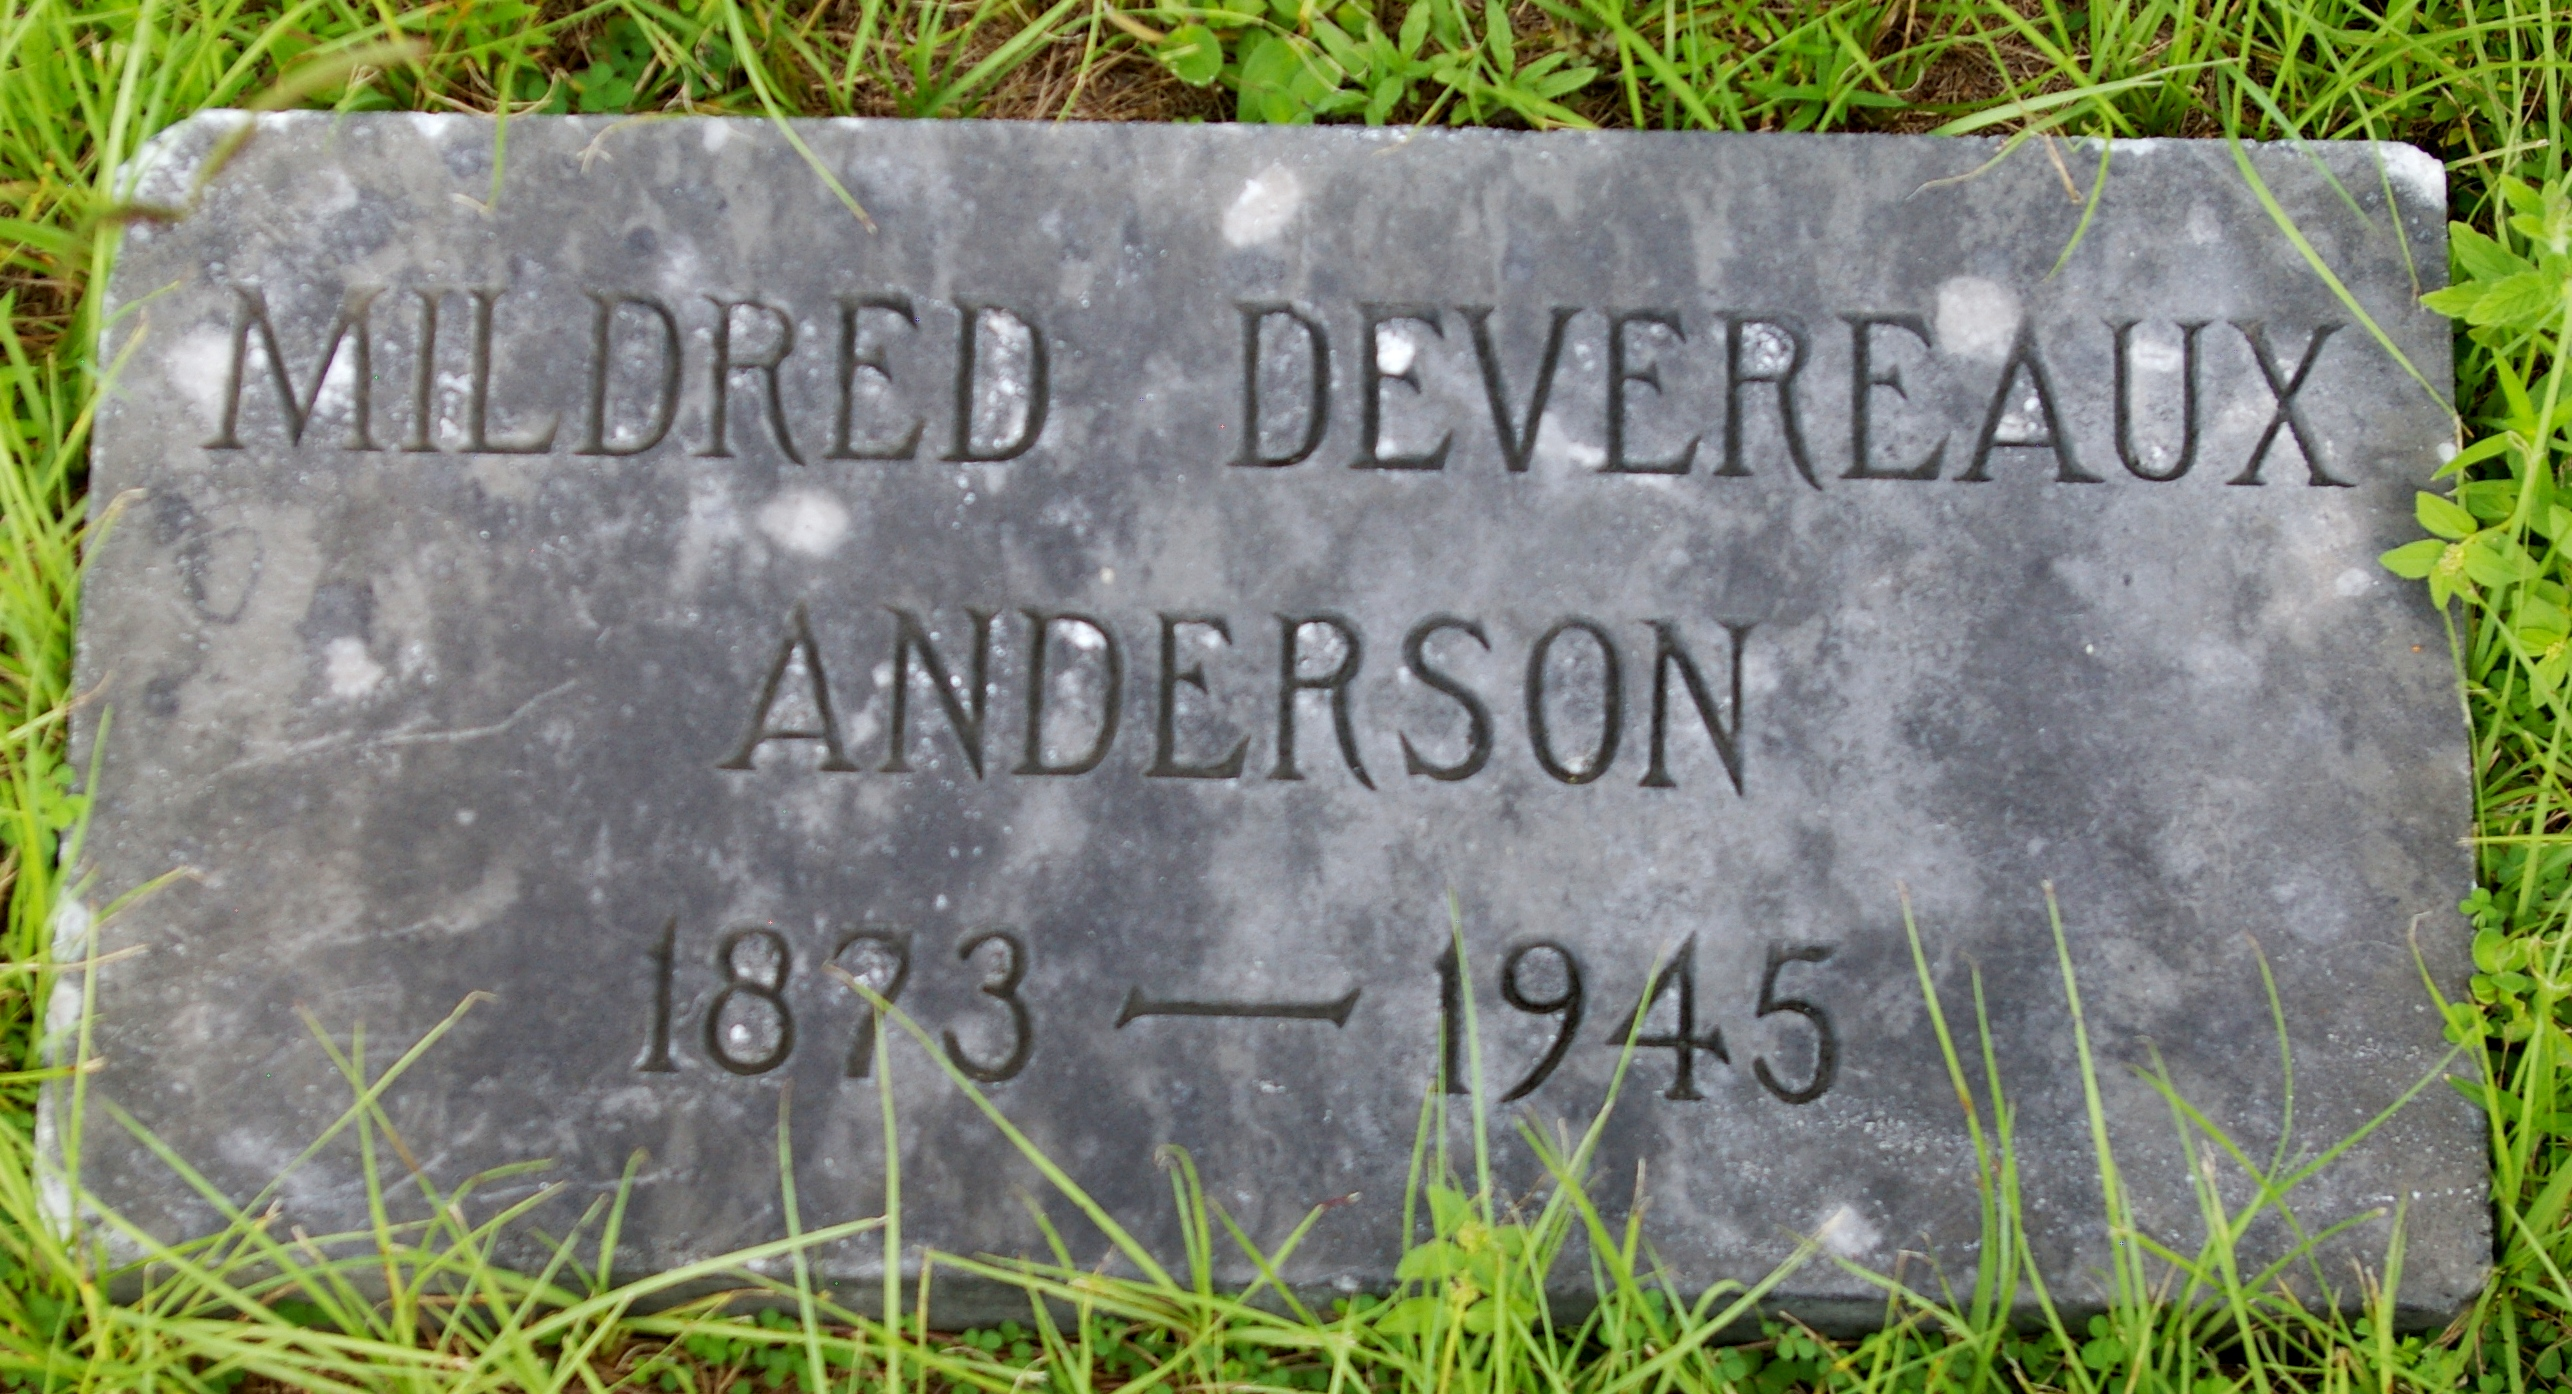 Mildred Devereaux Anderson